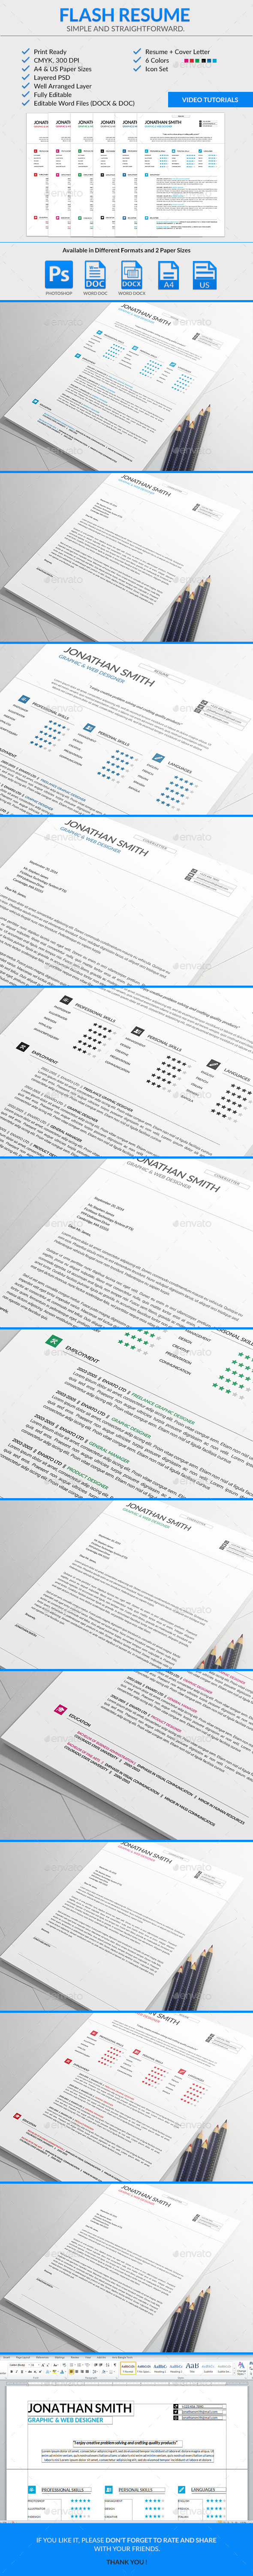 Flash Resume Template